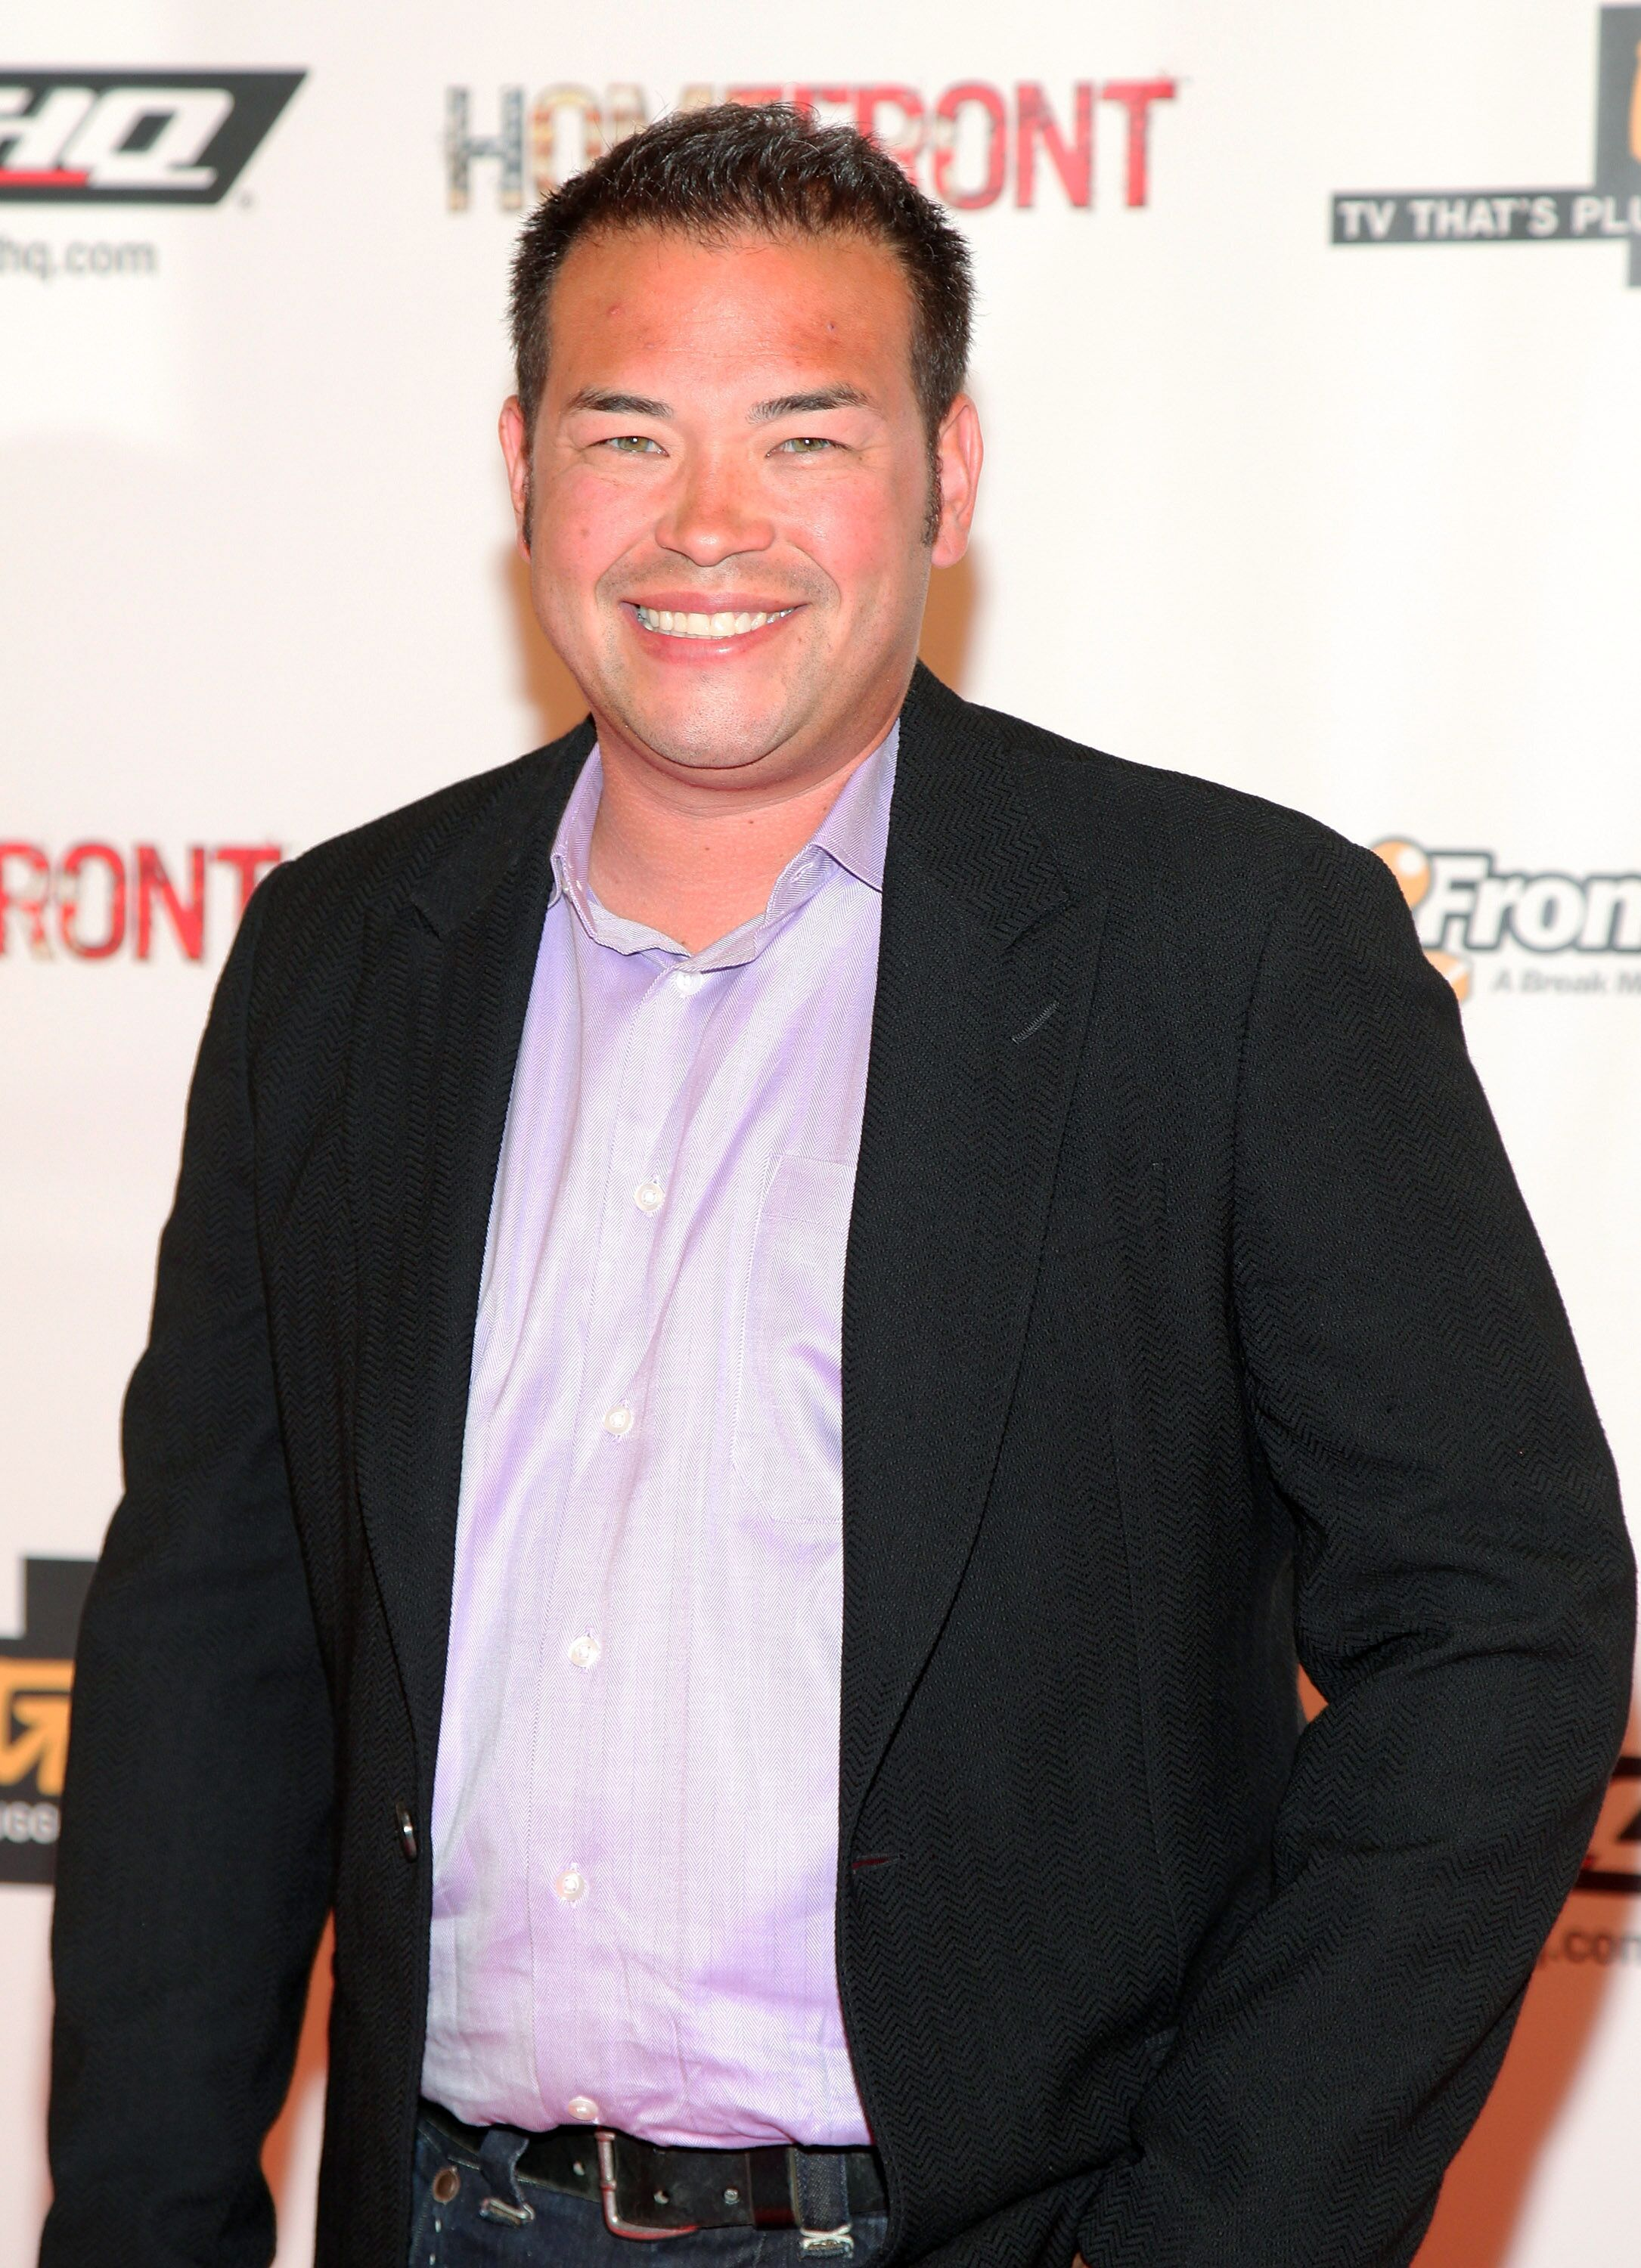 Jon Gosselin arrives at THQ's E3 'Take No Prisoners' event at The Standard Hotel Downtown on June 16, 2010   Photo: Getty Images